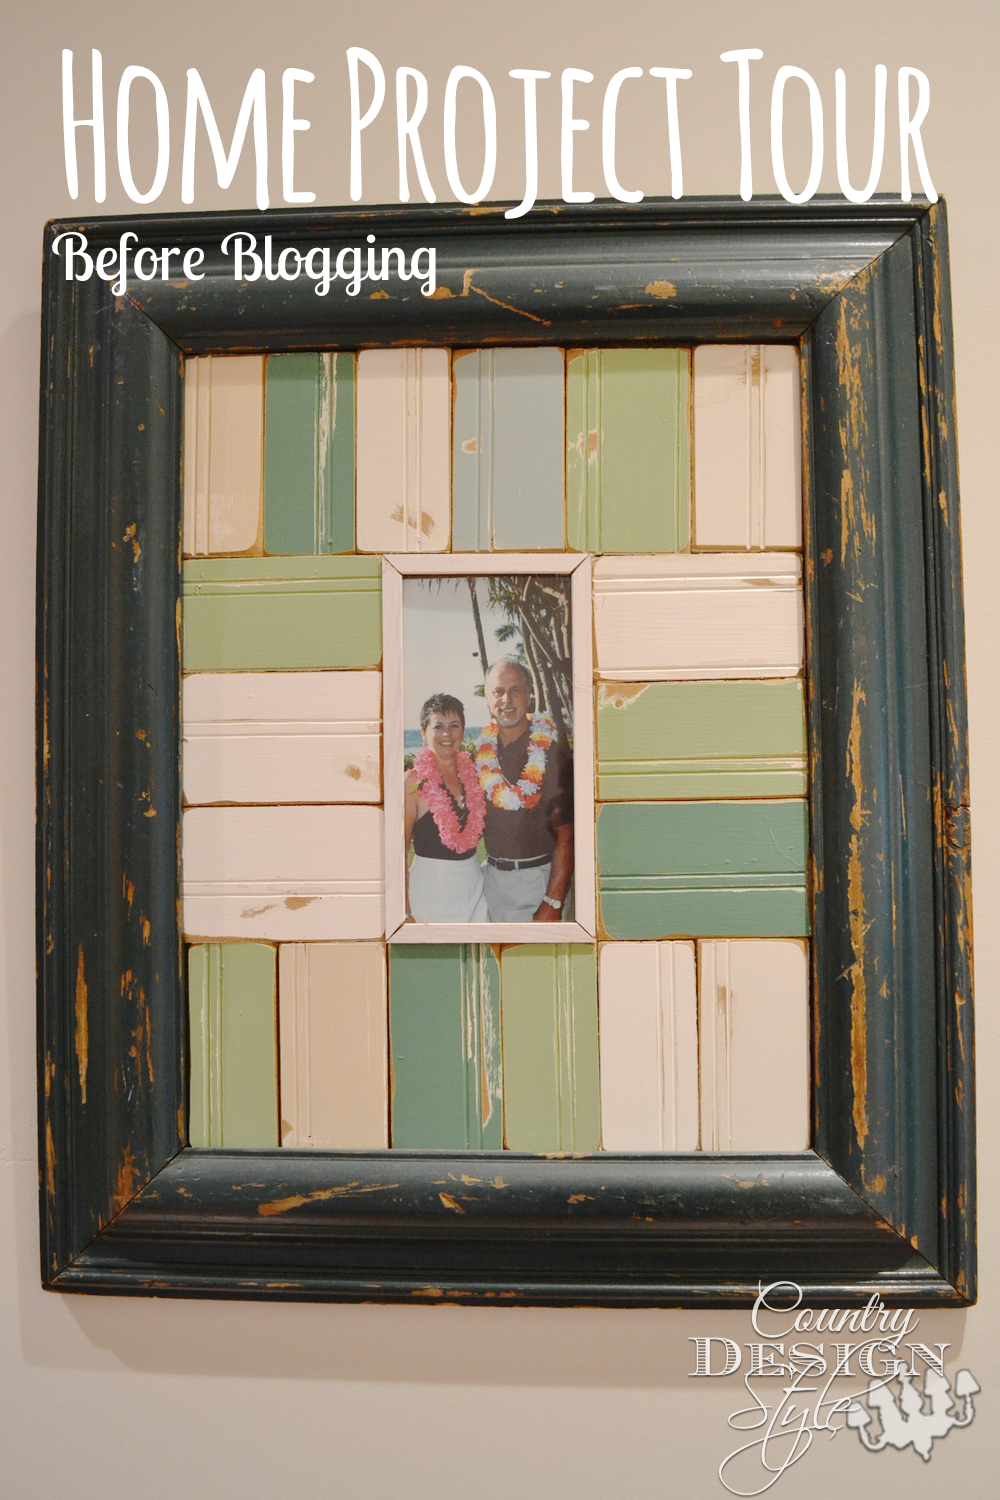 Frame inspired from a home catalog made before blogging. Country Design Style